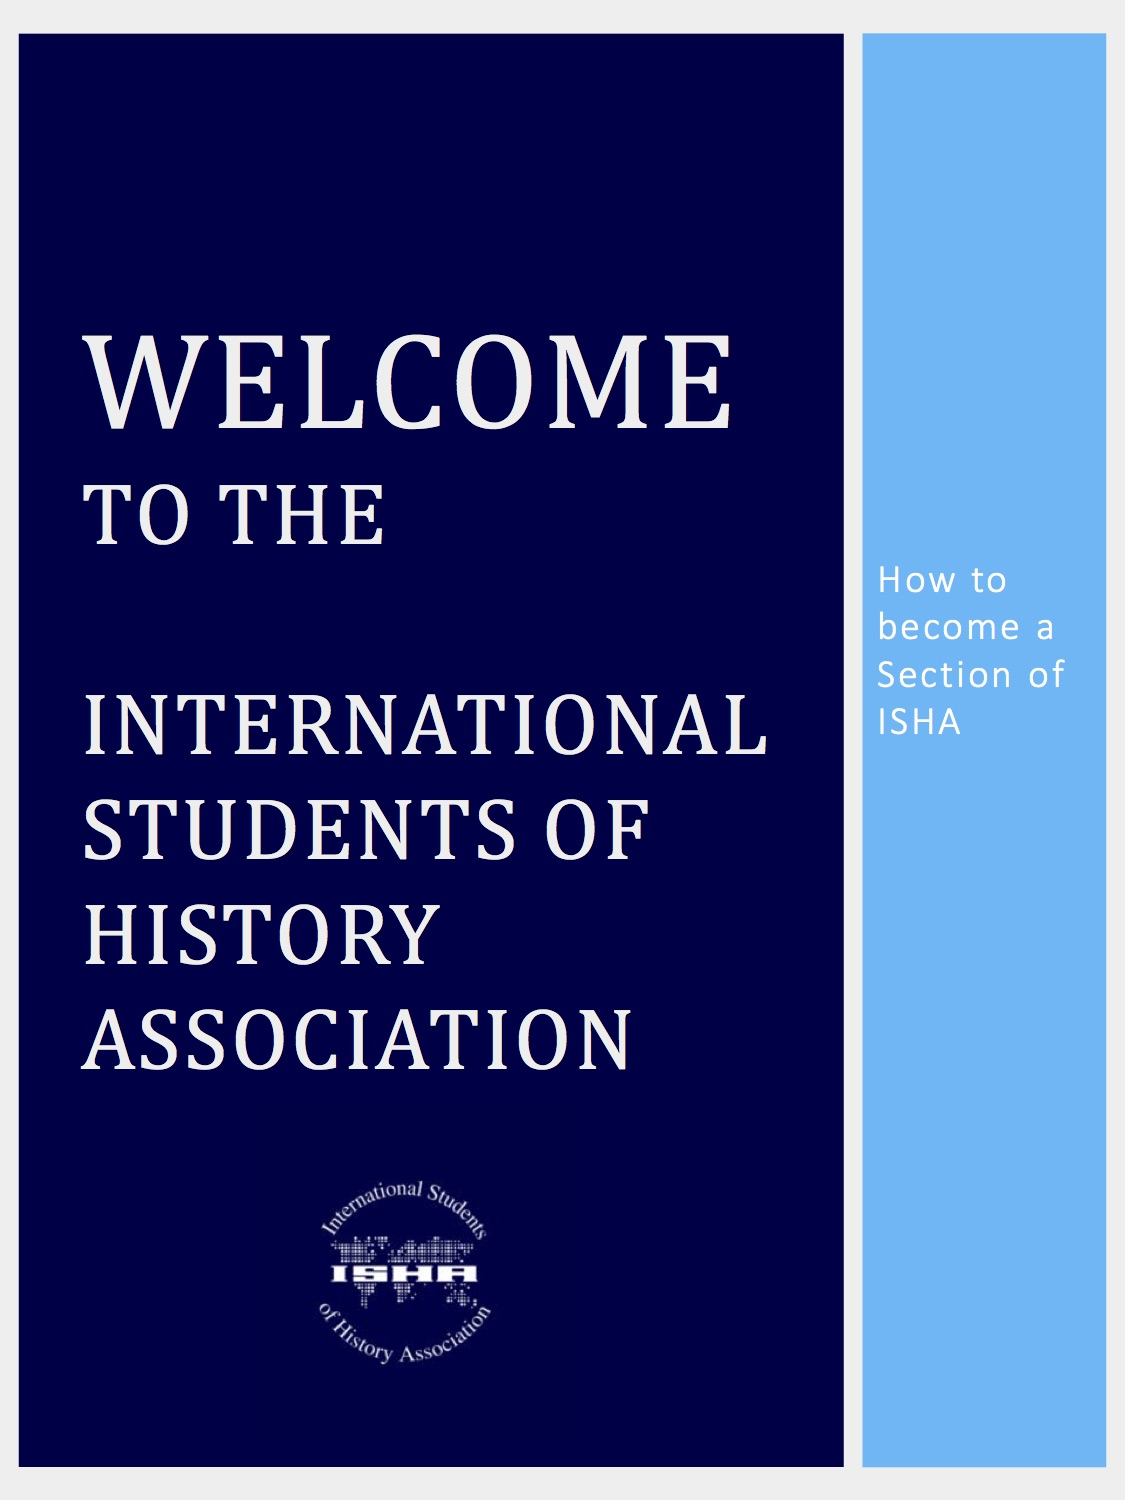 Welcome To The International Students Of History Association  Event Manual Template